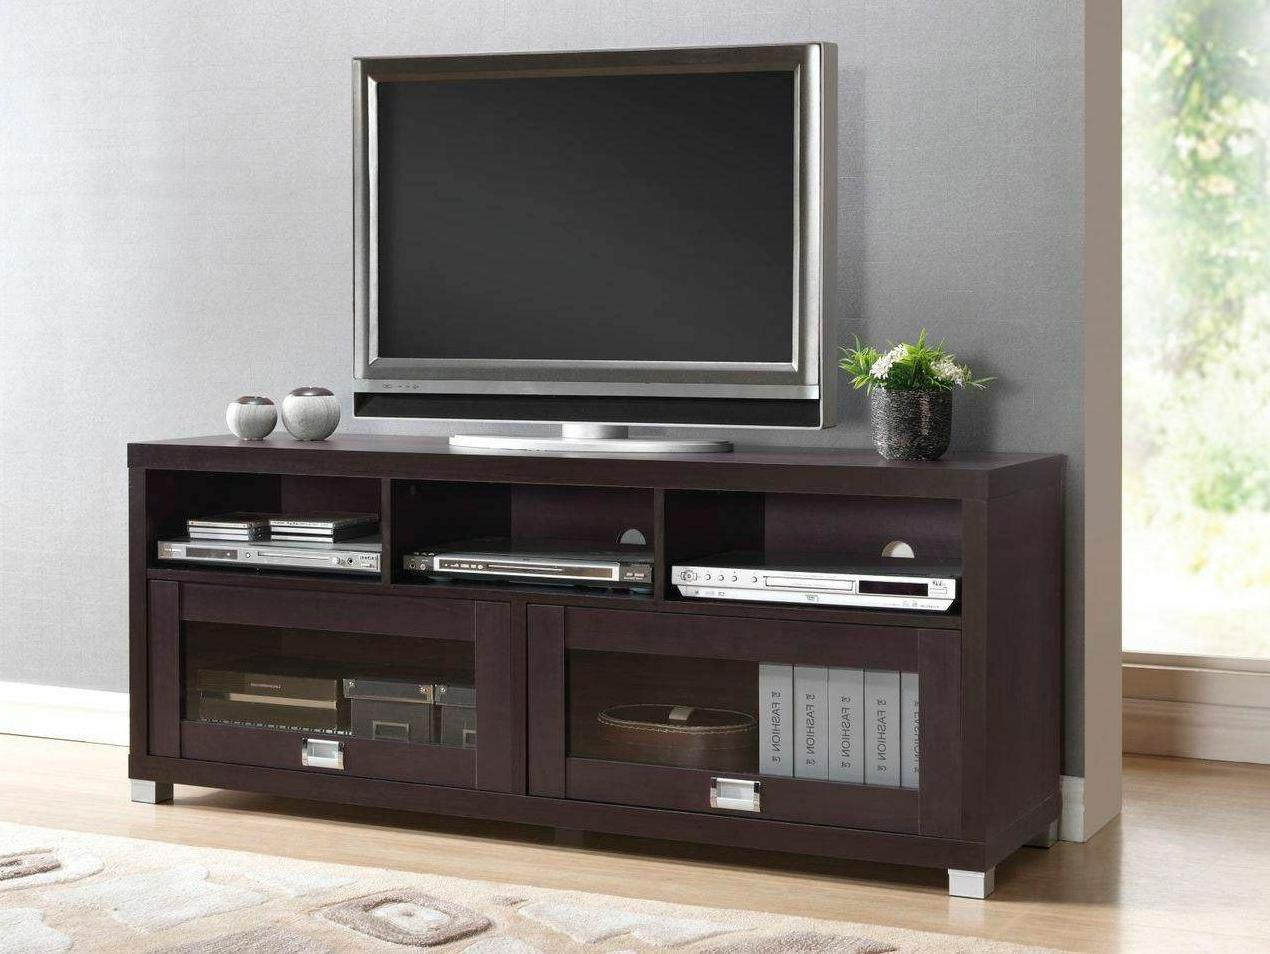 TV Stands for Flat Screens with Doors 65 Inch TV Cabinet Ent